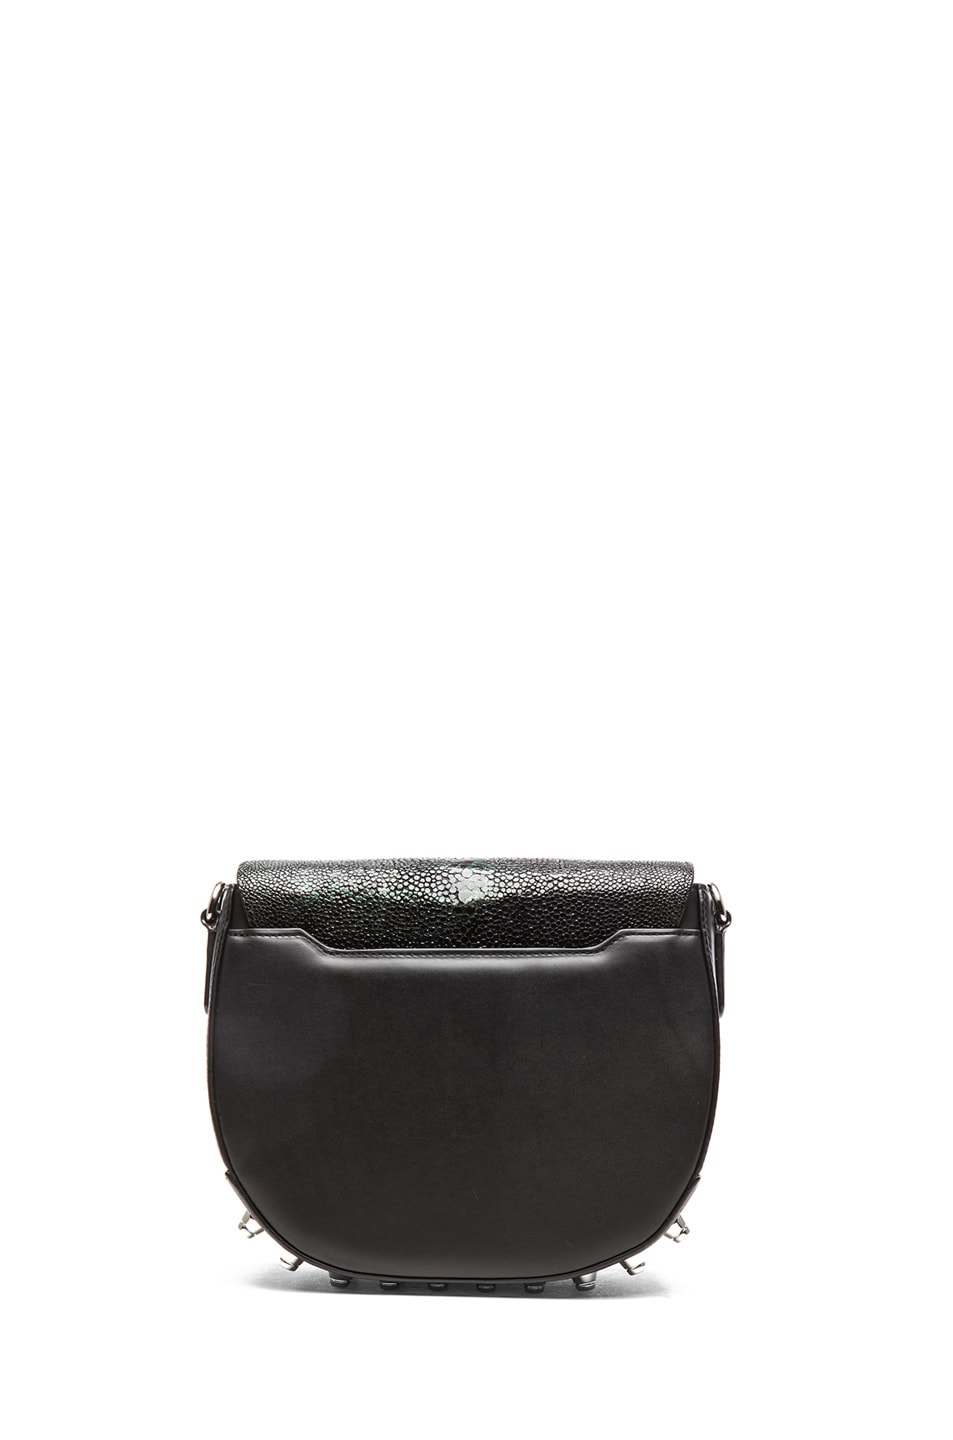 Image 2 of Alexander Wang Small Lia in Abalone Stingray